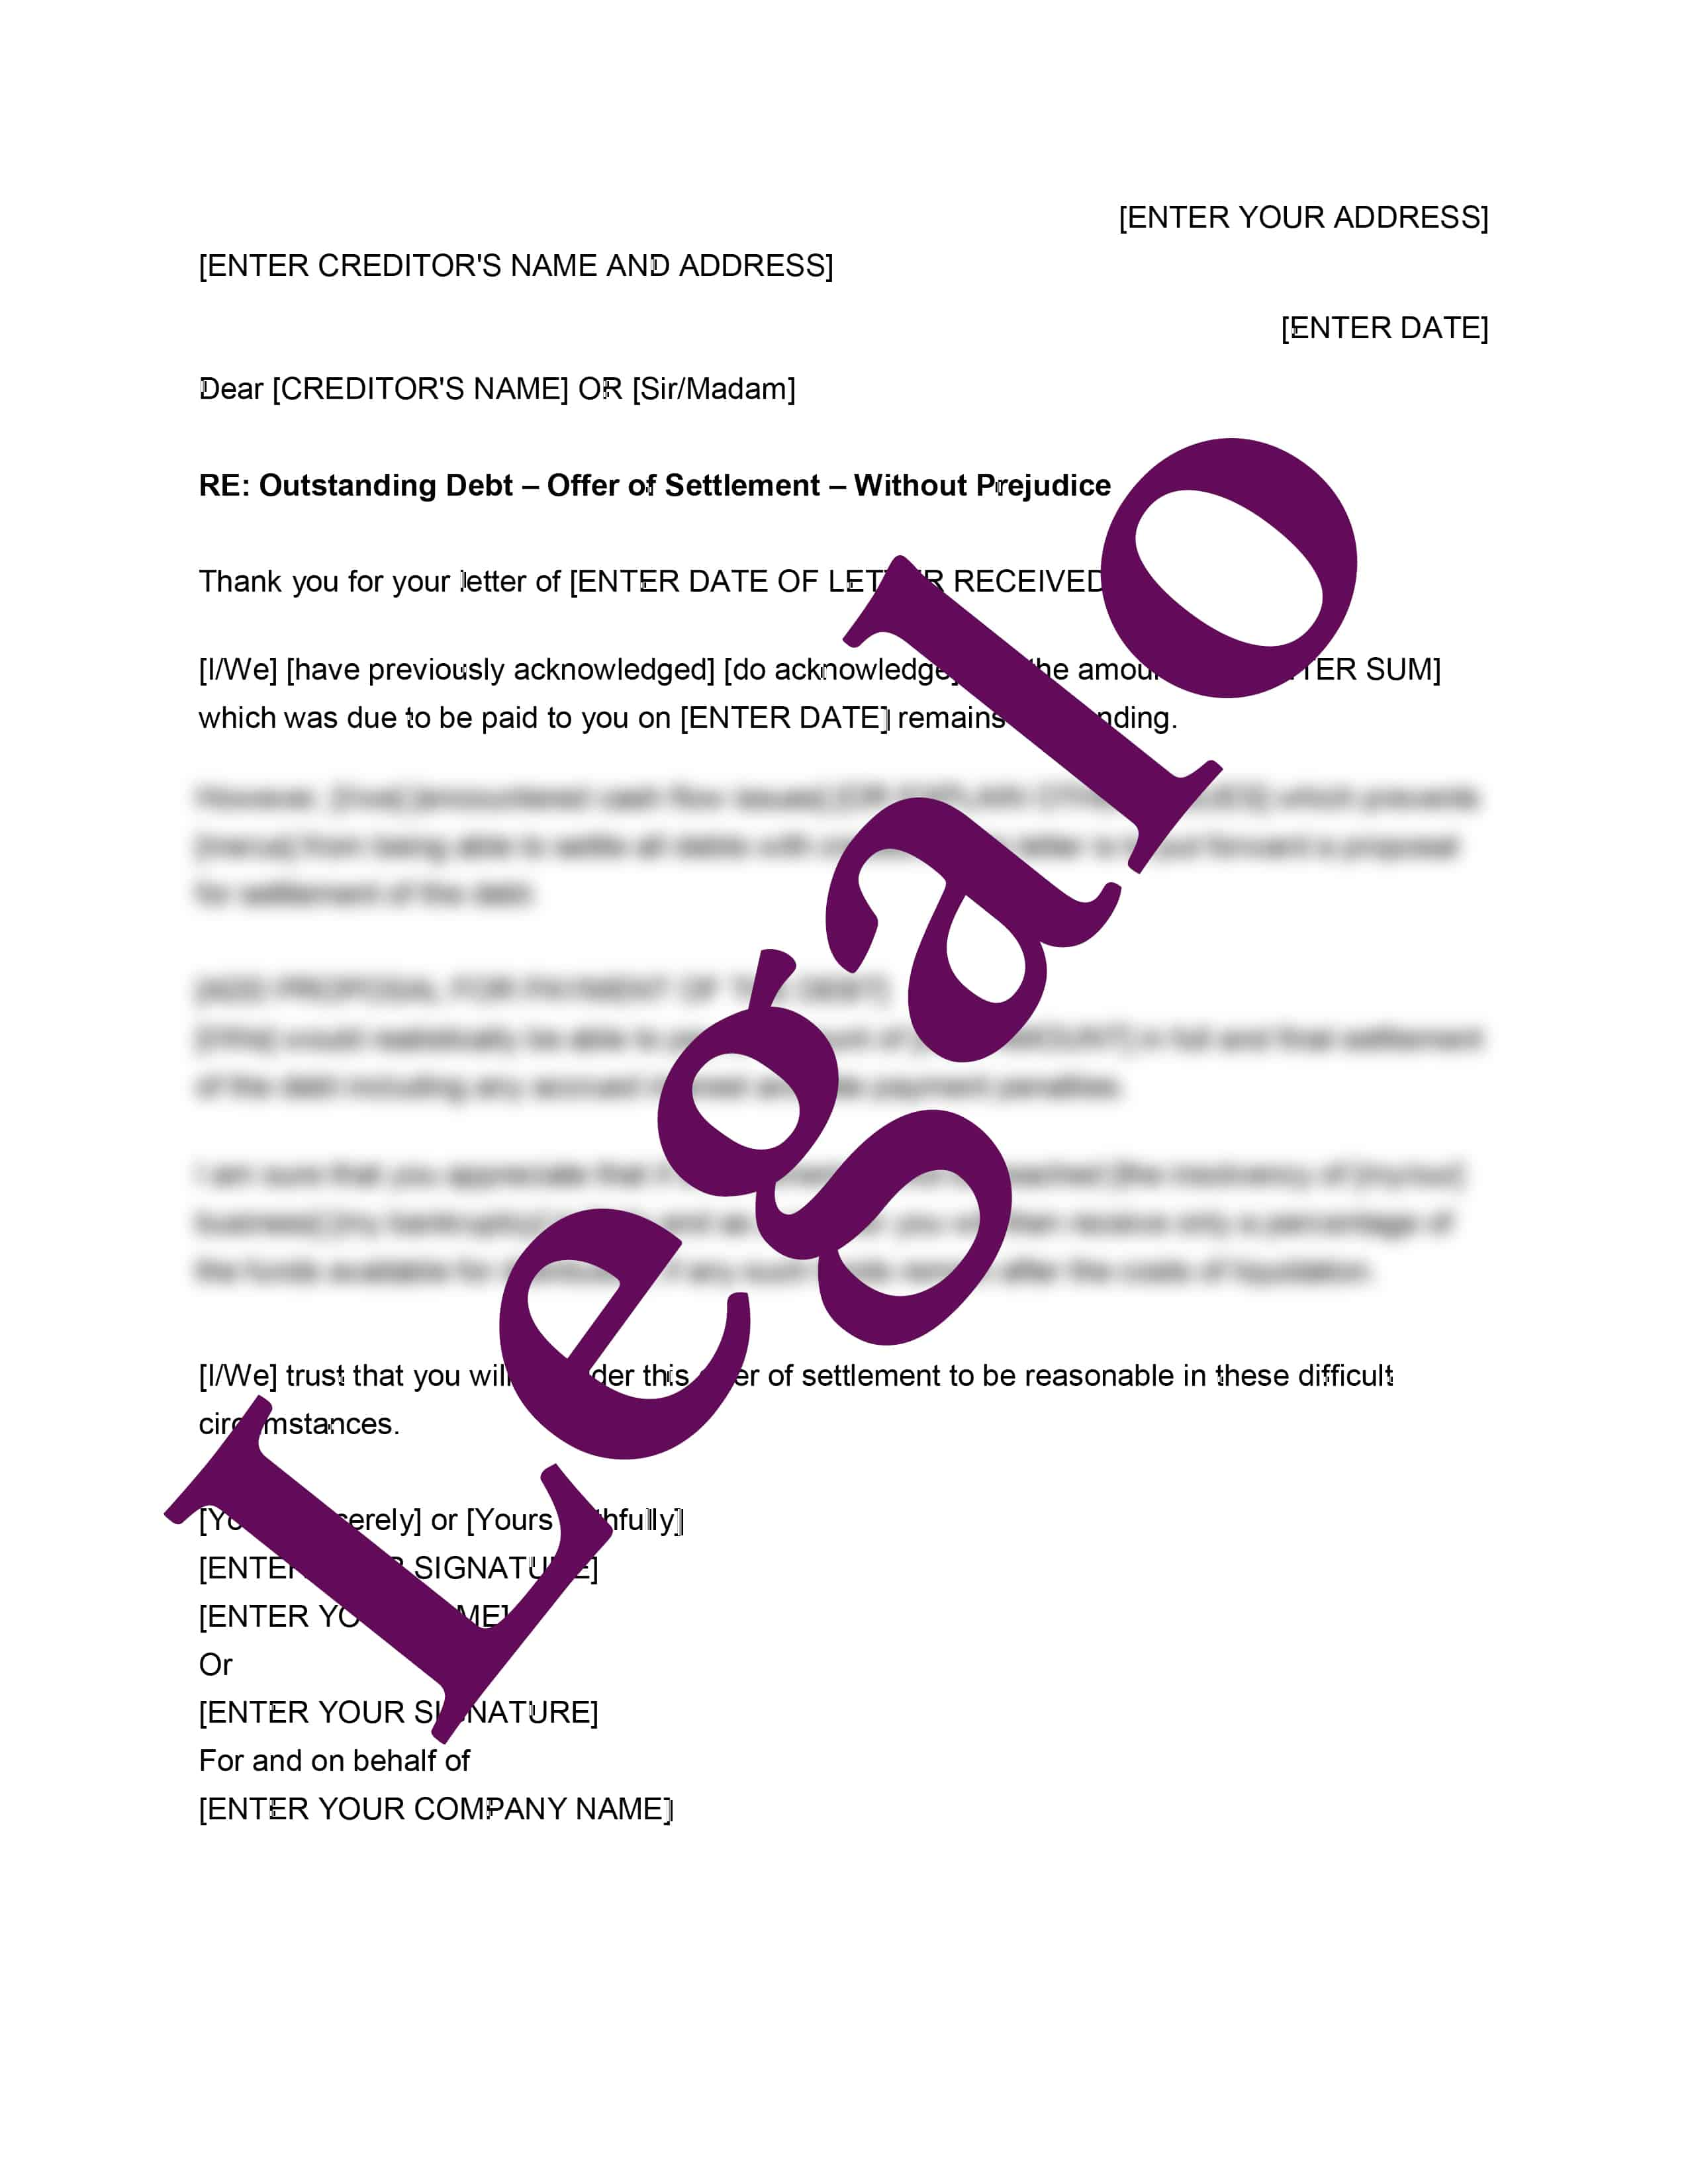 Debt Settlement Letter preview 1 image